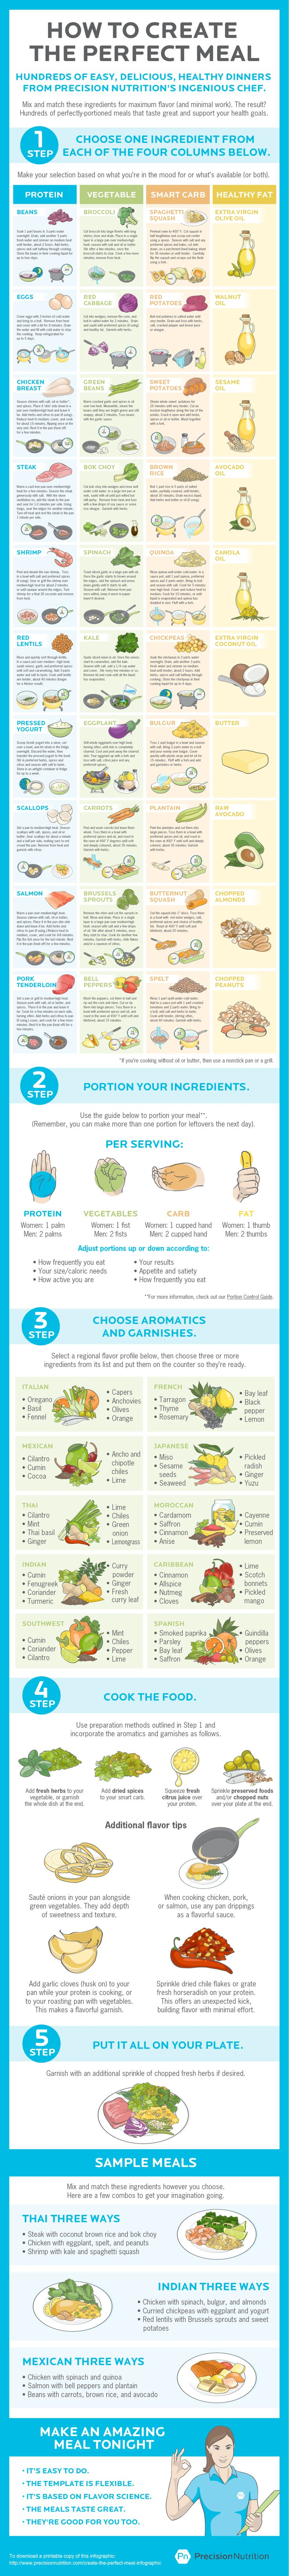 Create the perfect meal with this simple 5-step guide: http://www.precisionnutrition.com/create-the-perfect-meal-infographic